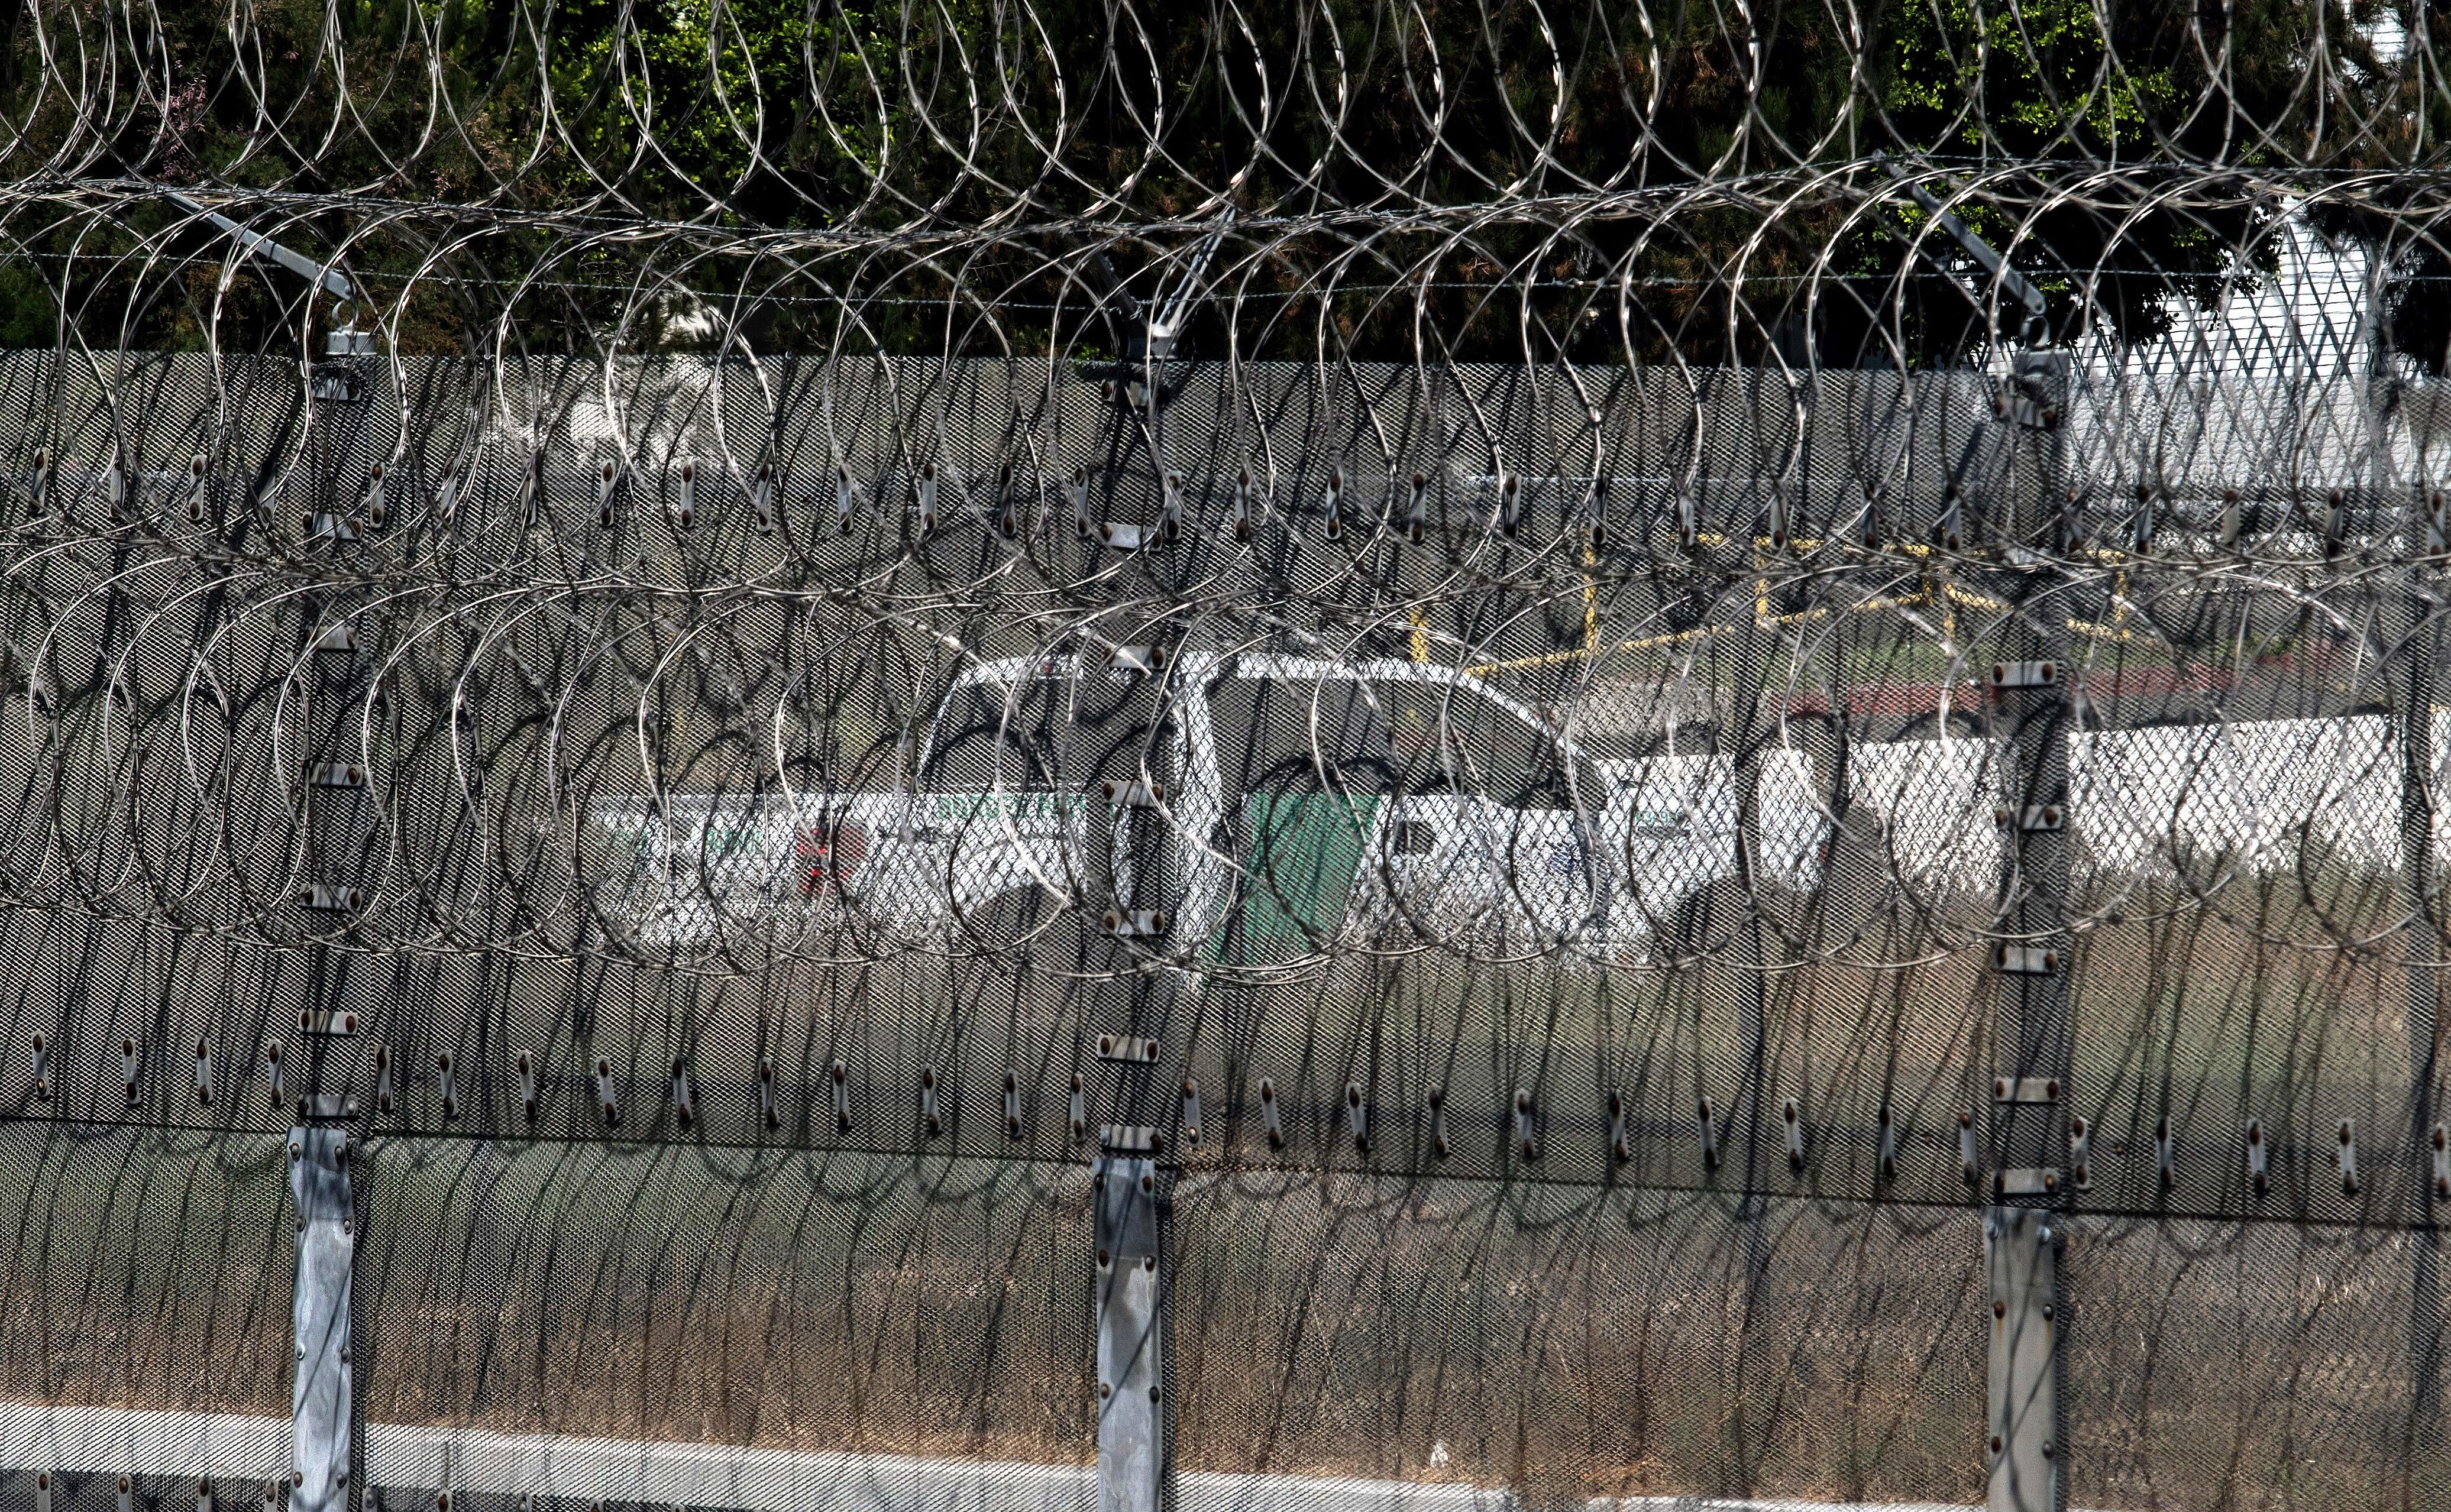 A Border Patrol vehicle is seen through the border fence near the exit of a tunnel used to smuggle people found at the US-Mexico border on August 27, 2017 in Tijuana, northwestern Mexico.